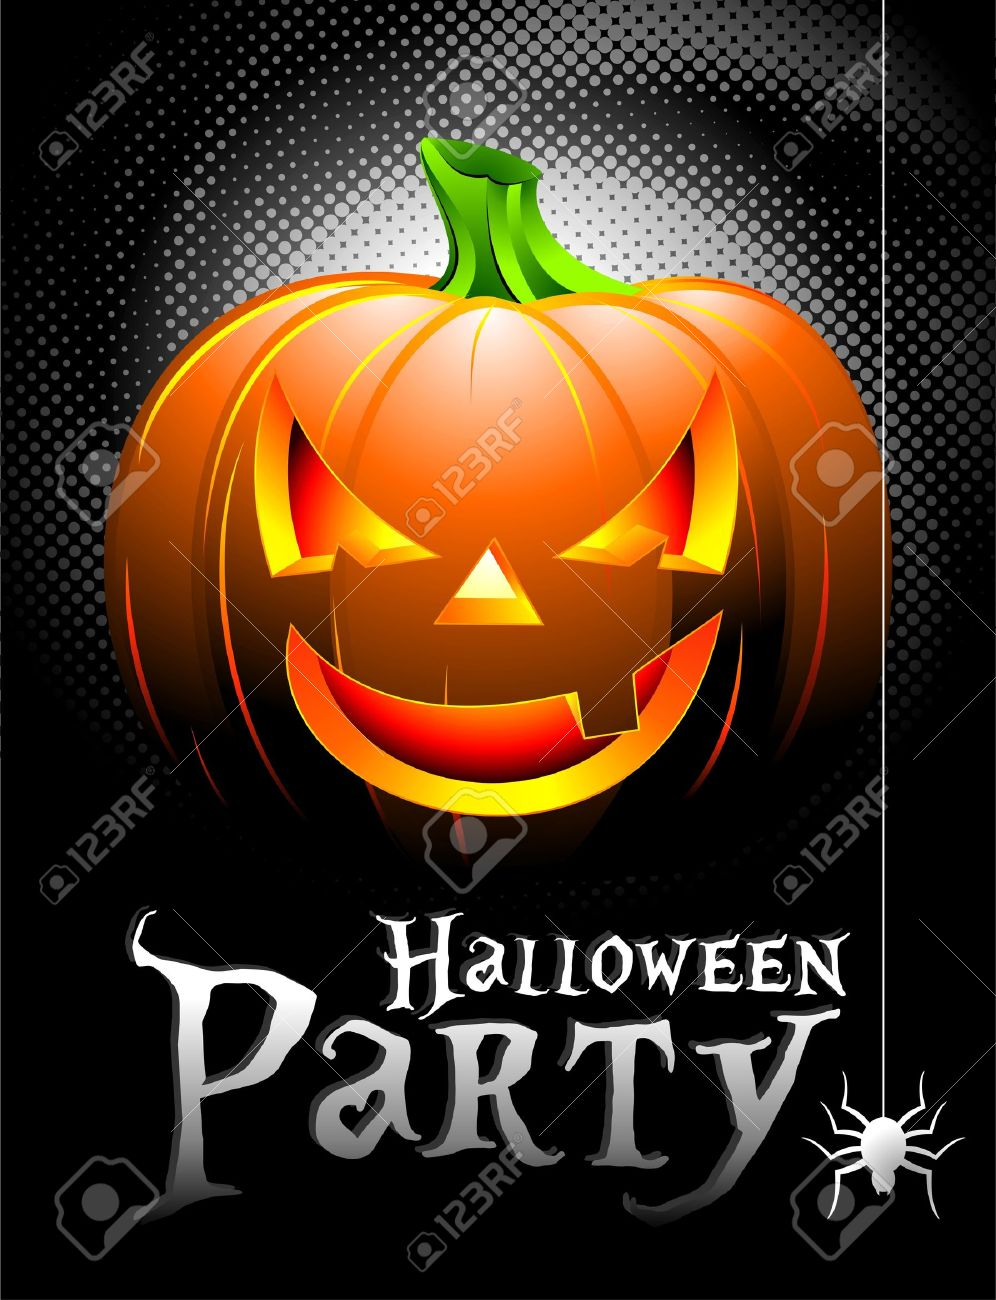 54,811 Halloween Party Stock Vector Illustration And Royalty Free ...